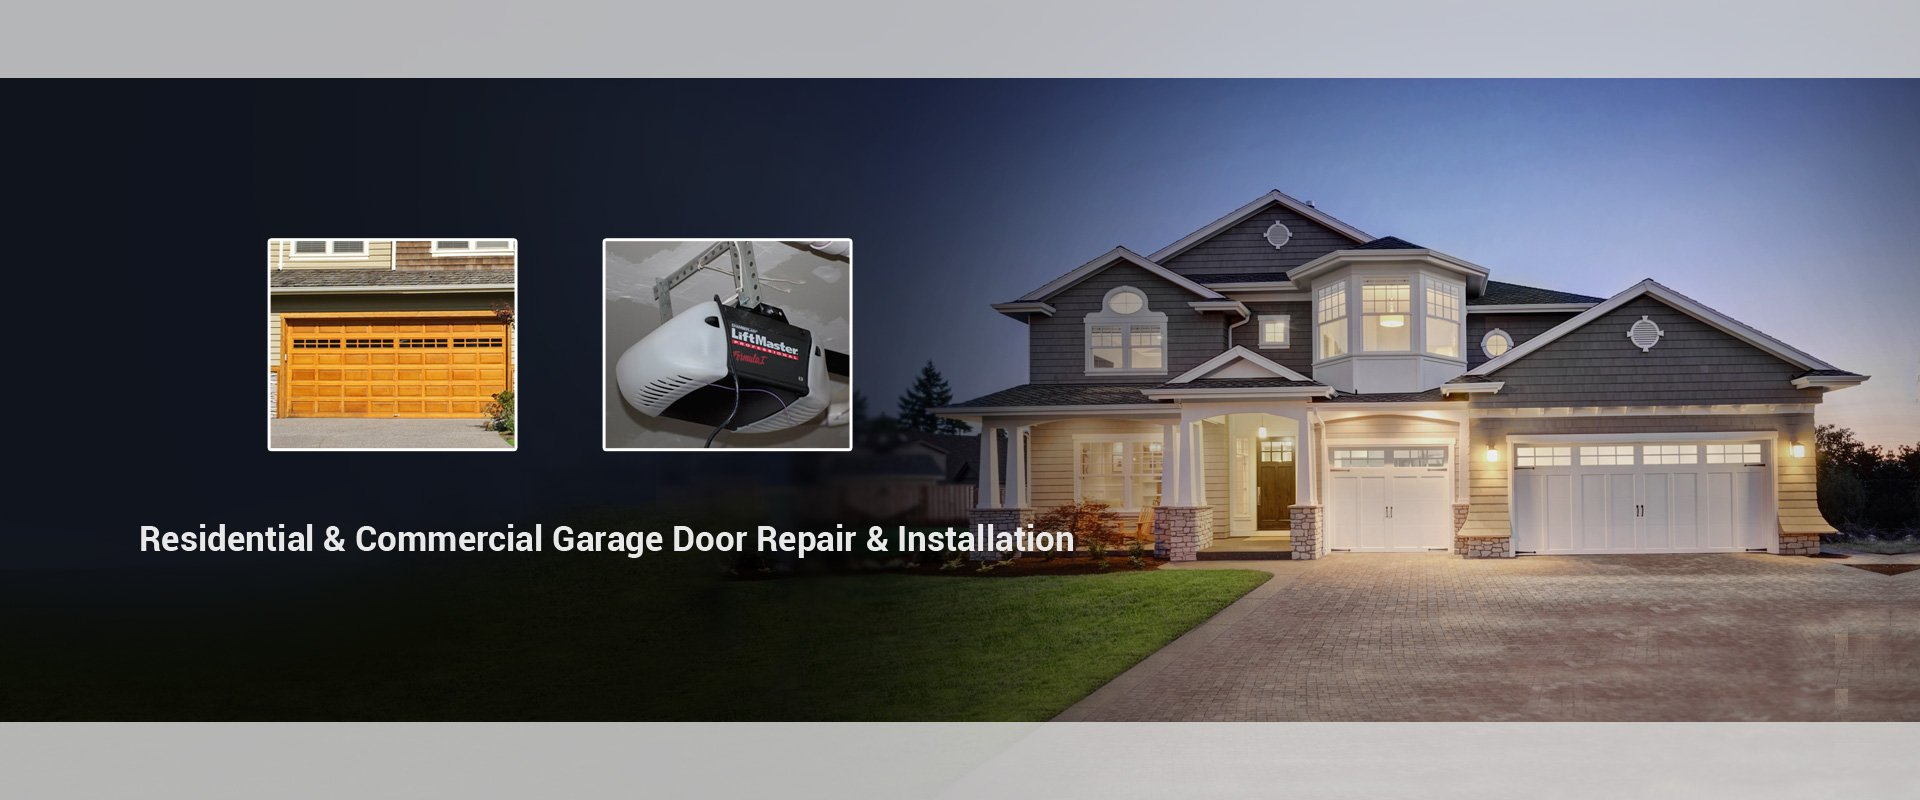 Garage Door Services Simi Valley CA